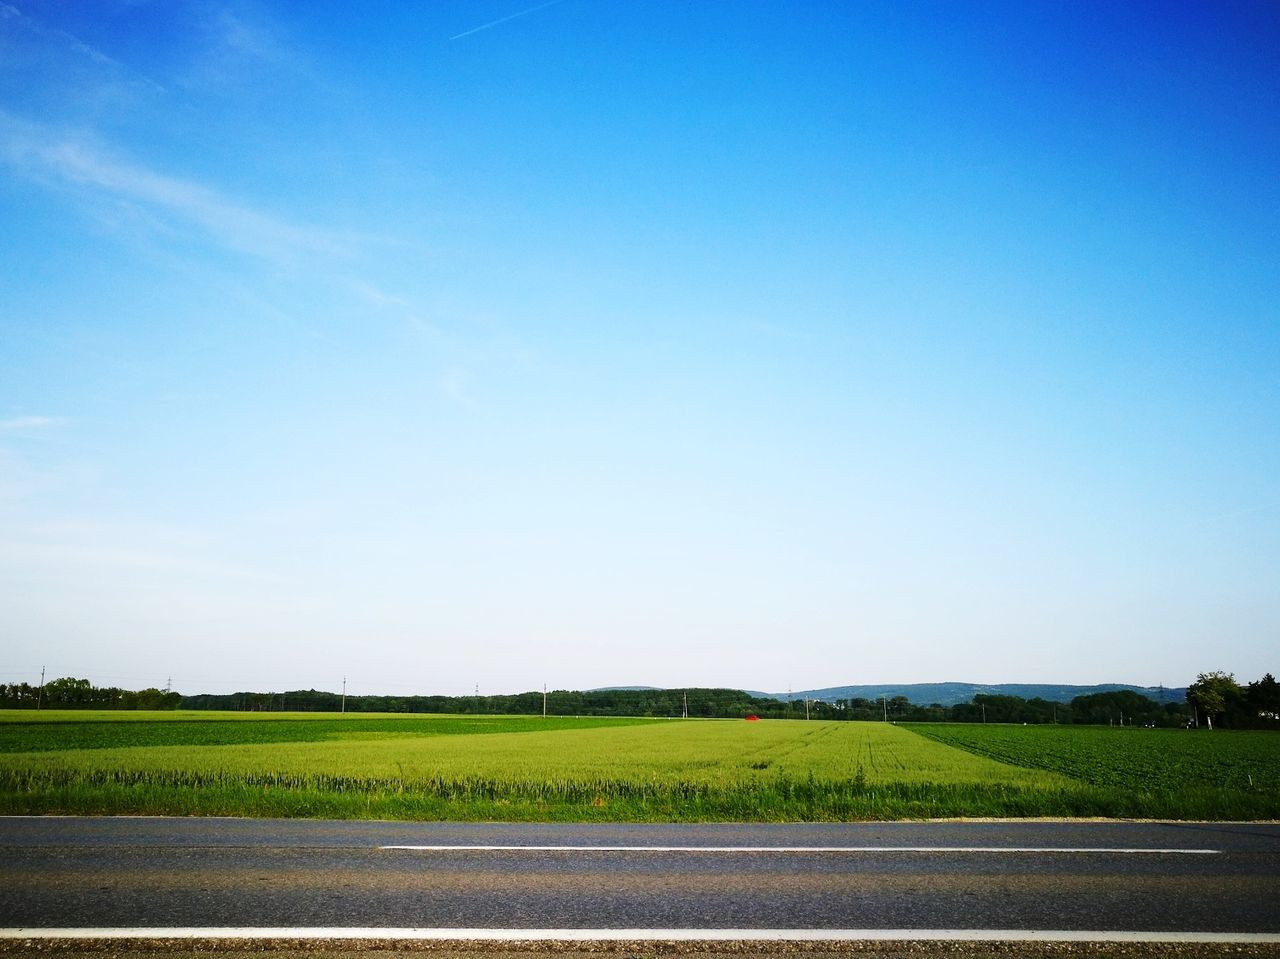 Agriculture Field Farm Growth Rural Scene Crop  No People Beauty In Nature Cultivated Nature Day Outdoors Landscape Clear Sky Freshness Food Sky Scenics Irrigation Equipment Tree Austria Red Car EyeEmNewHere